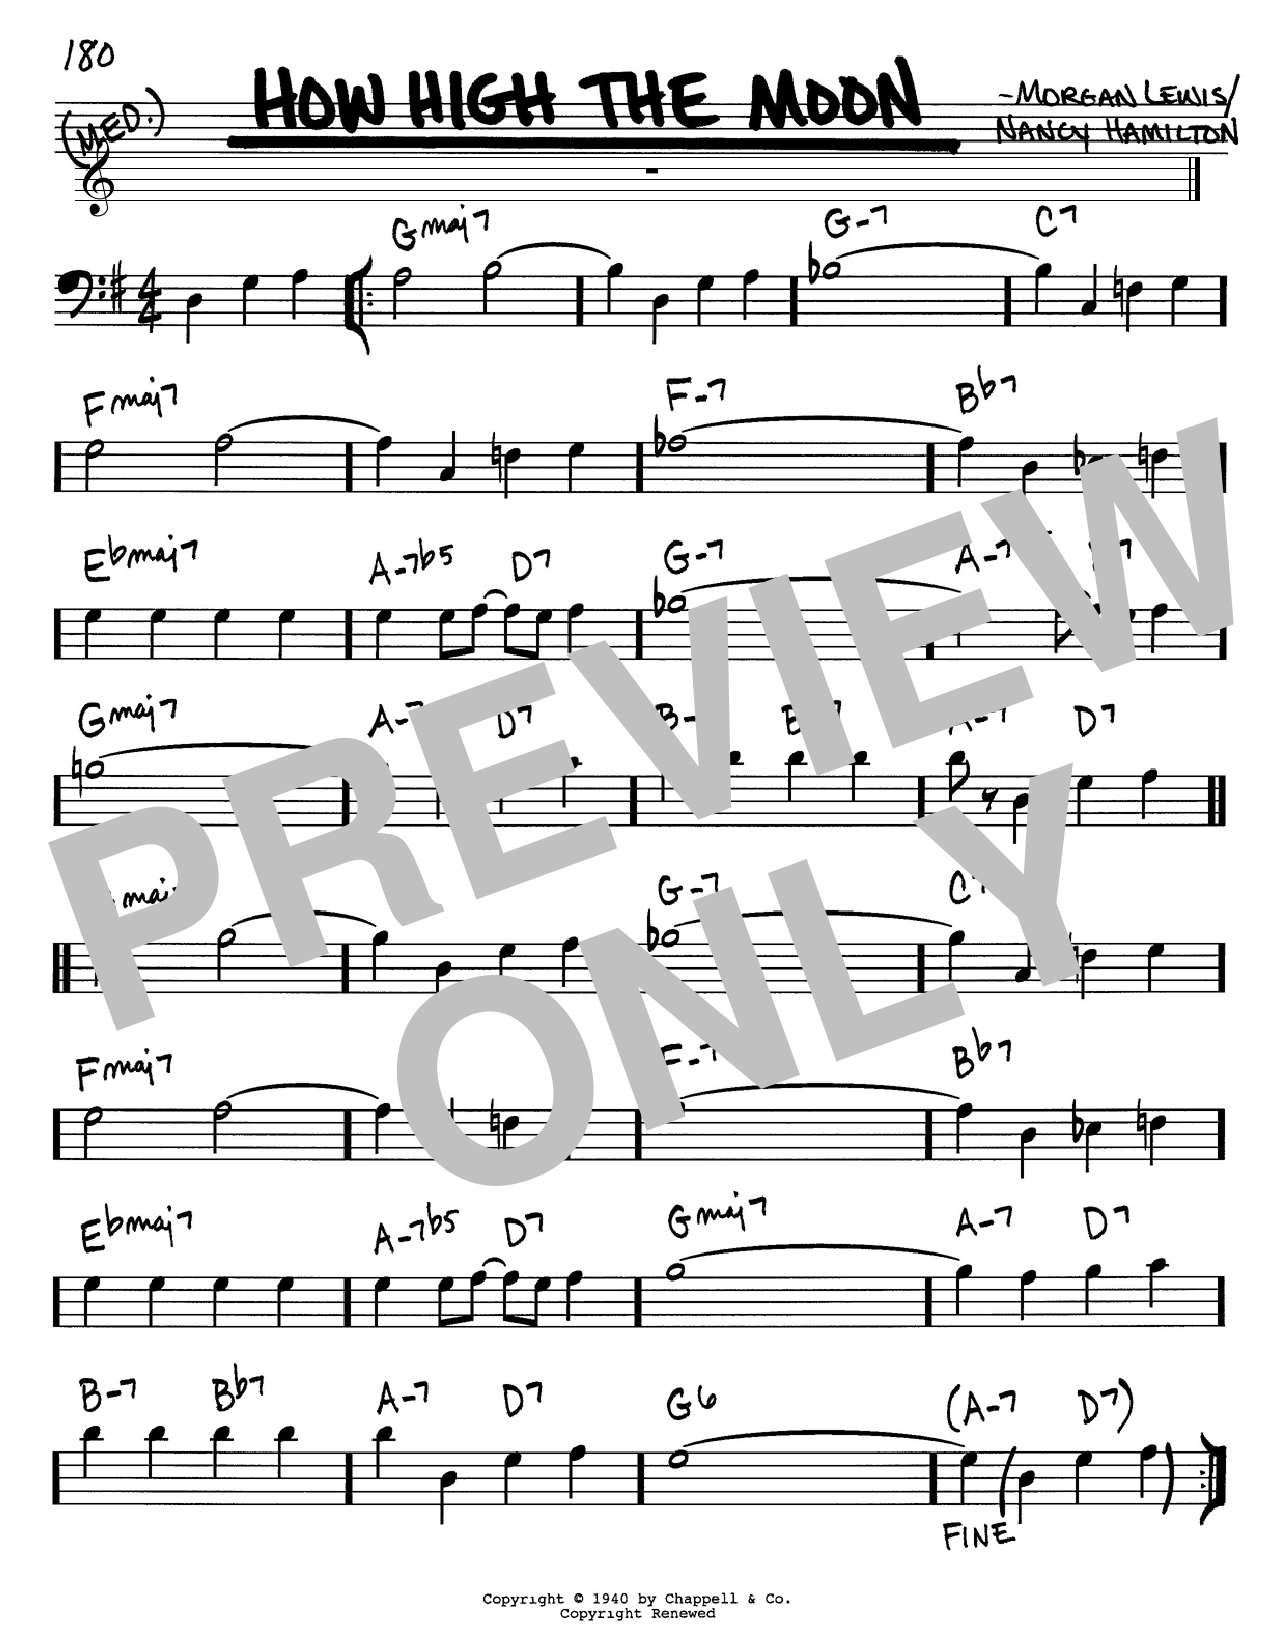 Les Paul How High The Moon sheet music notes and chords. Download Printable PDF.